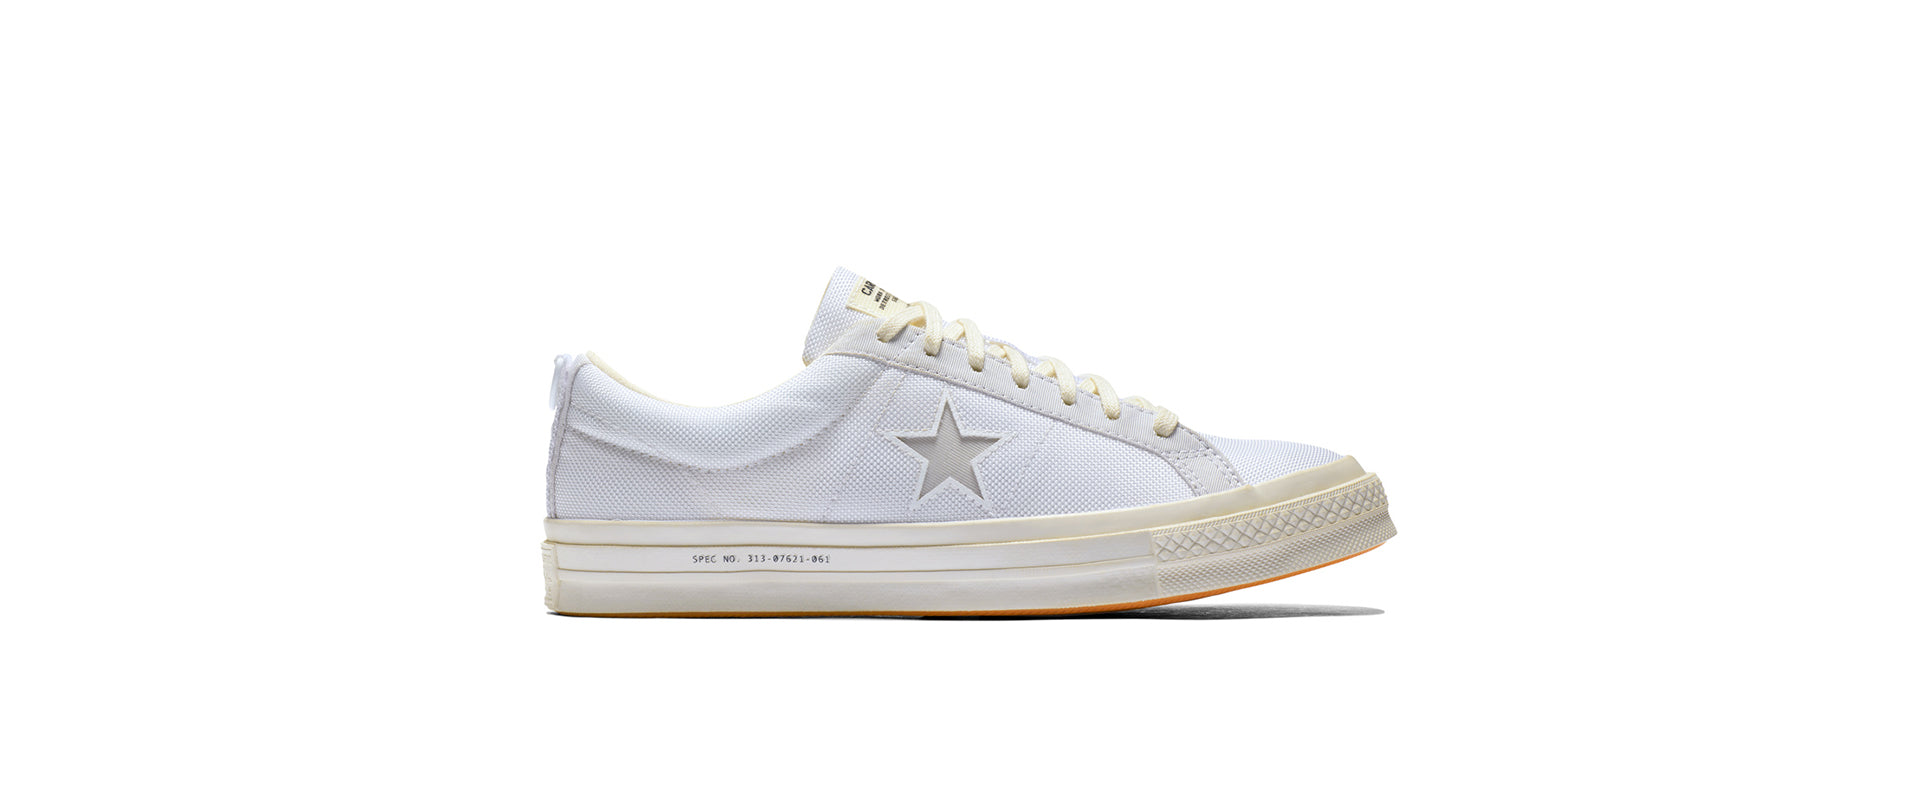 Converse x Carhartt WIP One Star White